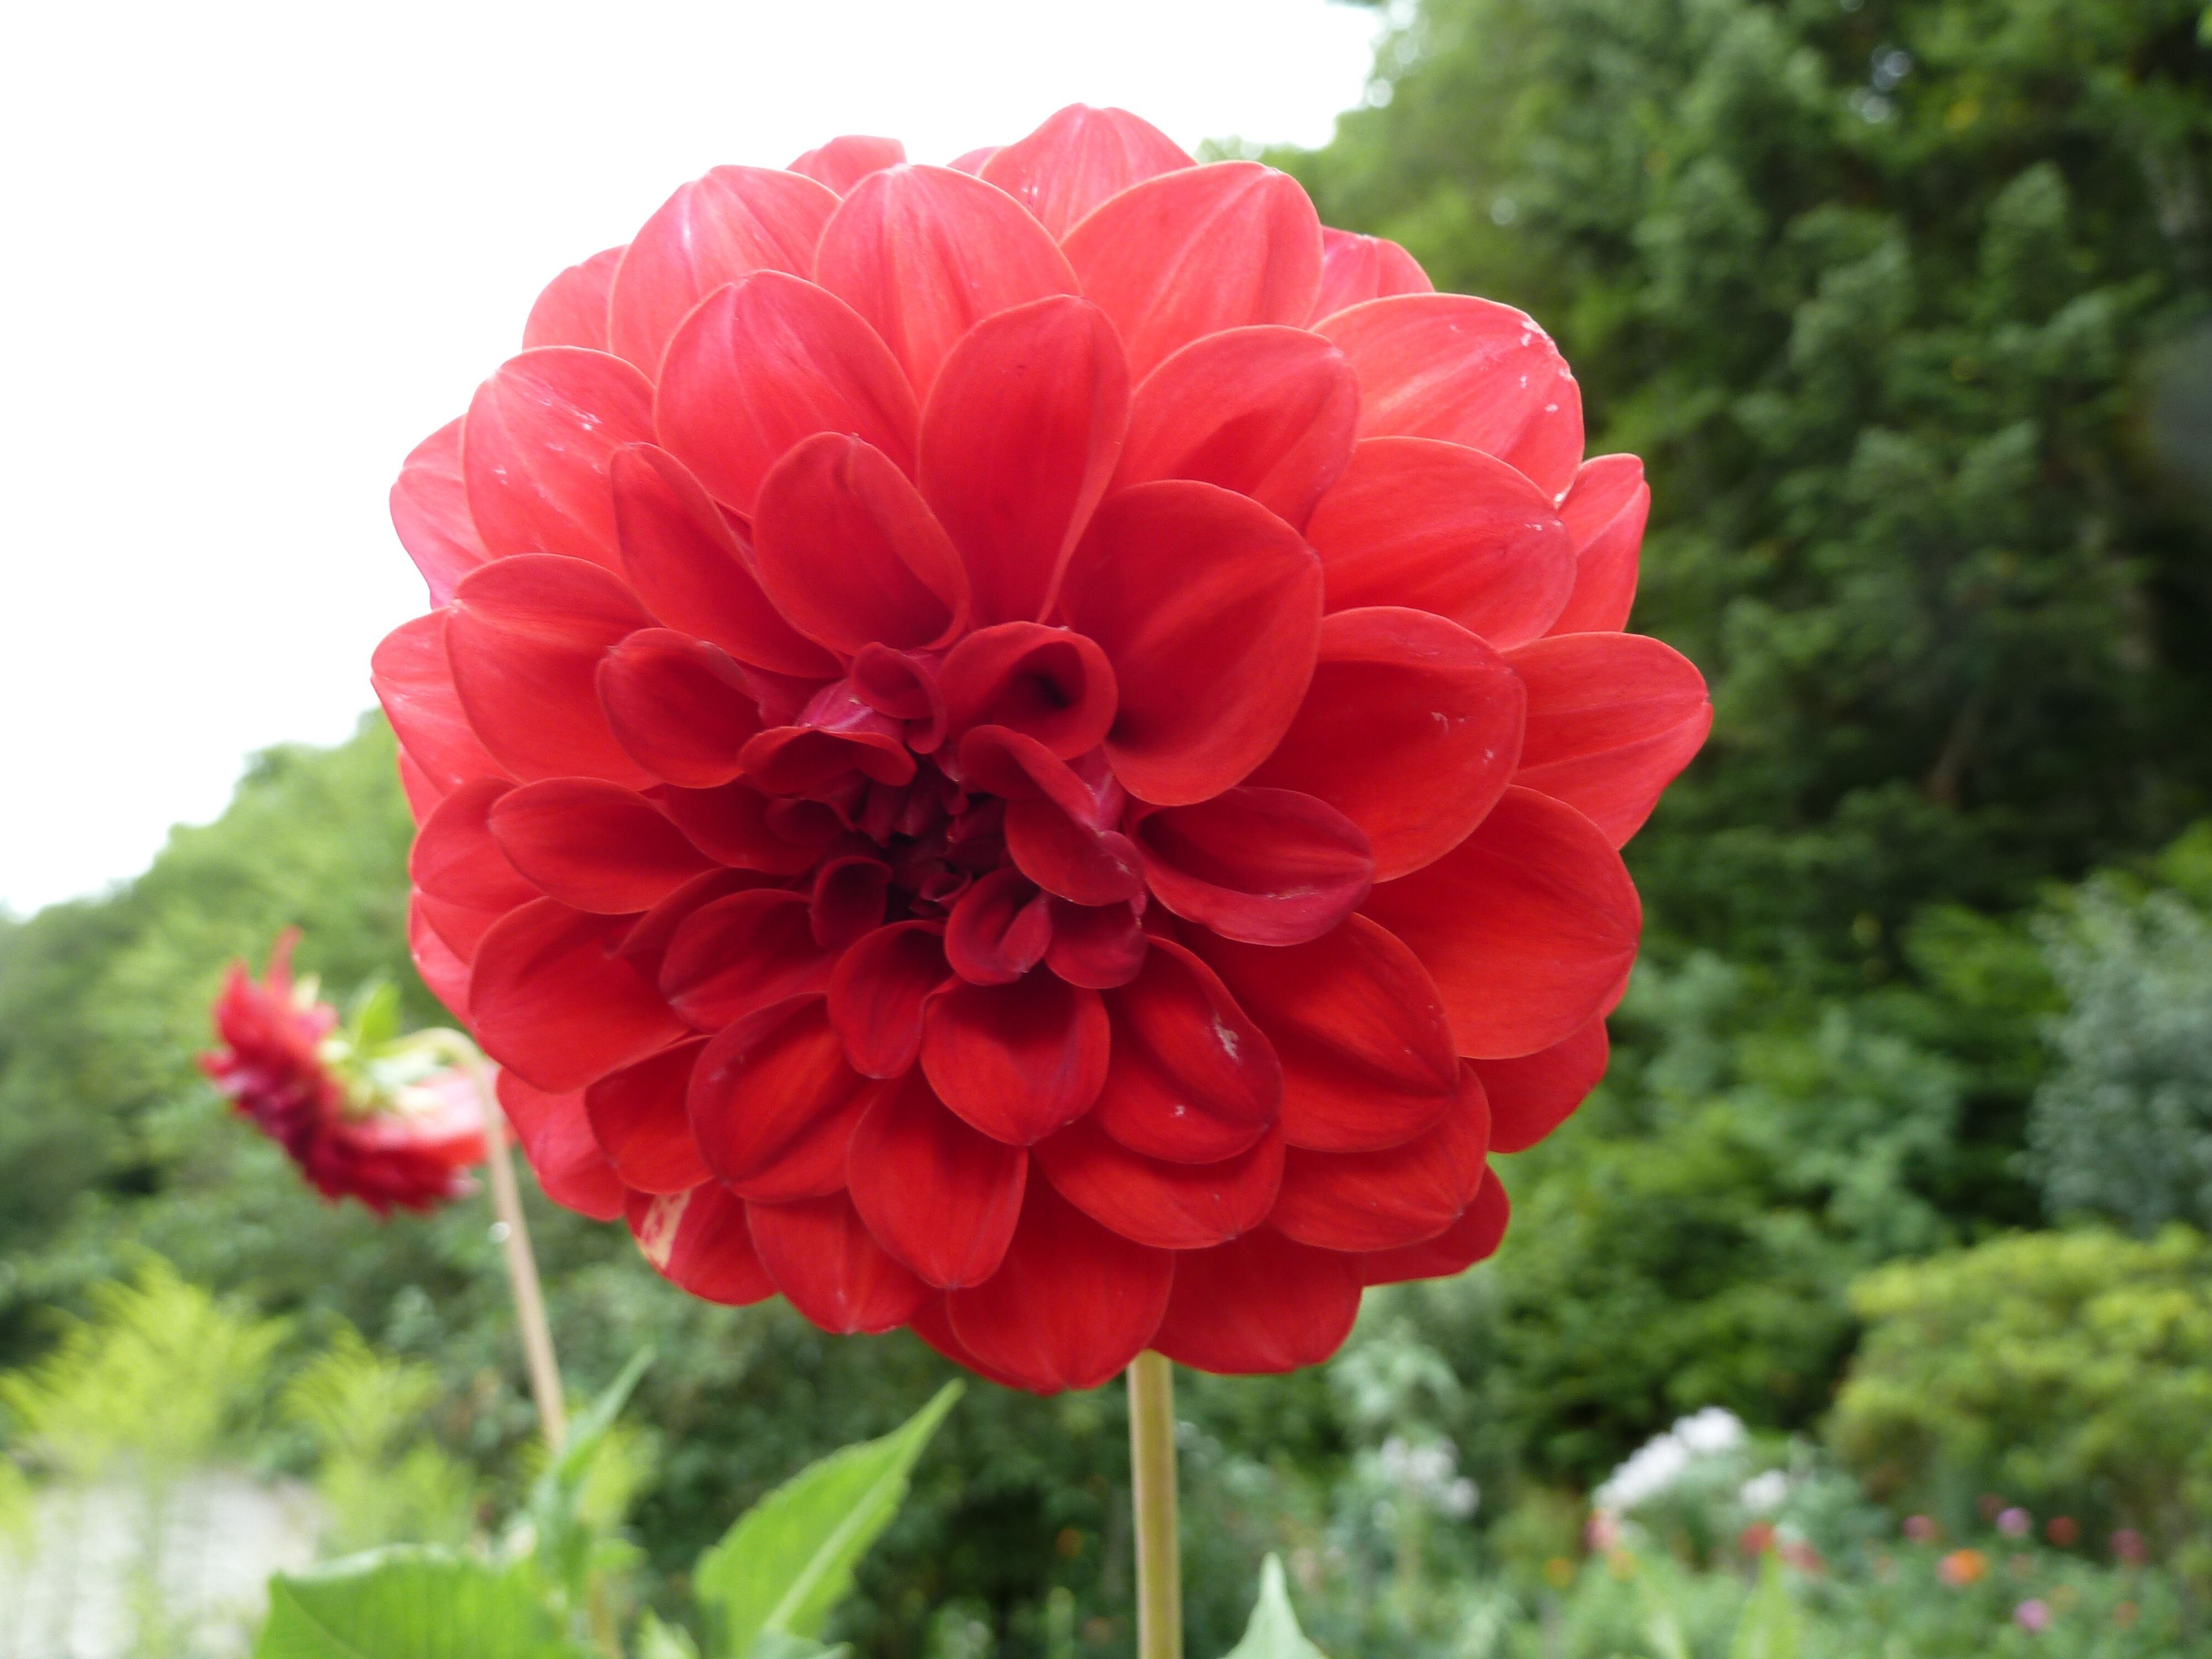 flower, petal, beauty in nature, fragility, red, freshness, nature, growth, flower head, focus on foreground, blooming, plant, day, close-up, outdoors, no people, zinnia